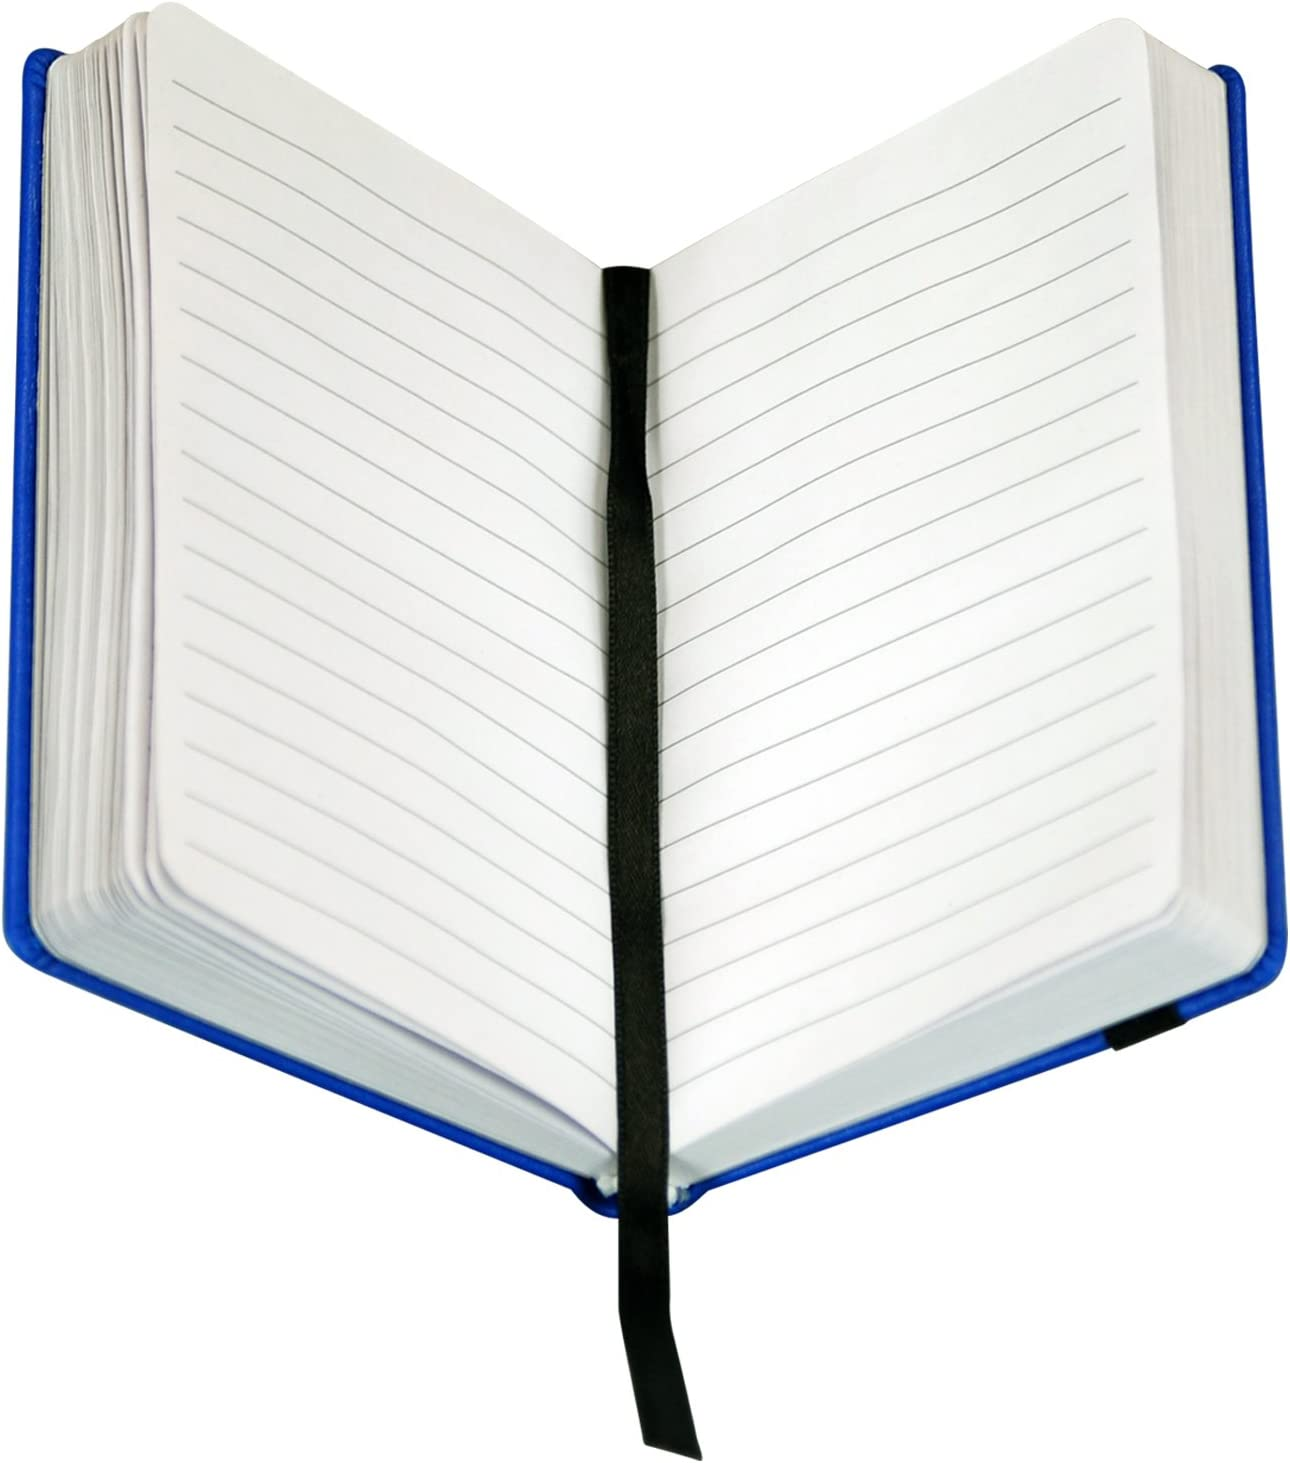 Diary, Notebook 120 Lined Sheets Blue Samsill Writing Journal Hardbound Cover Pocket Size 3.5 x 5.5 240 Pages